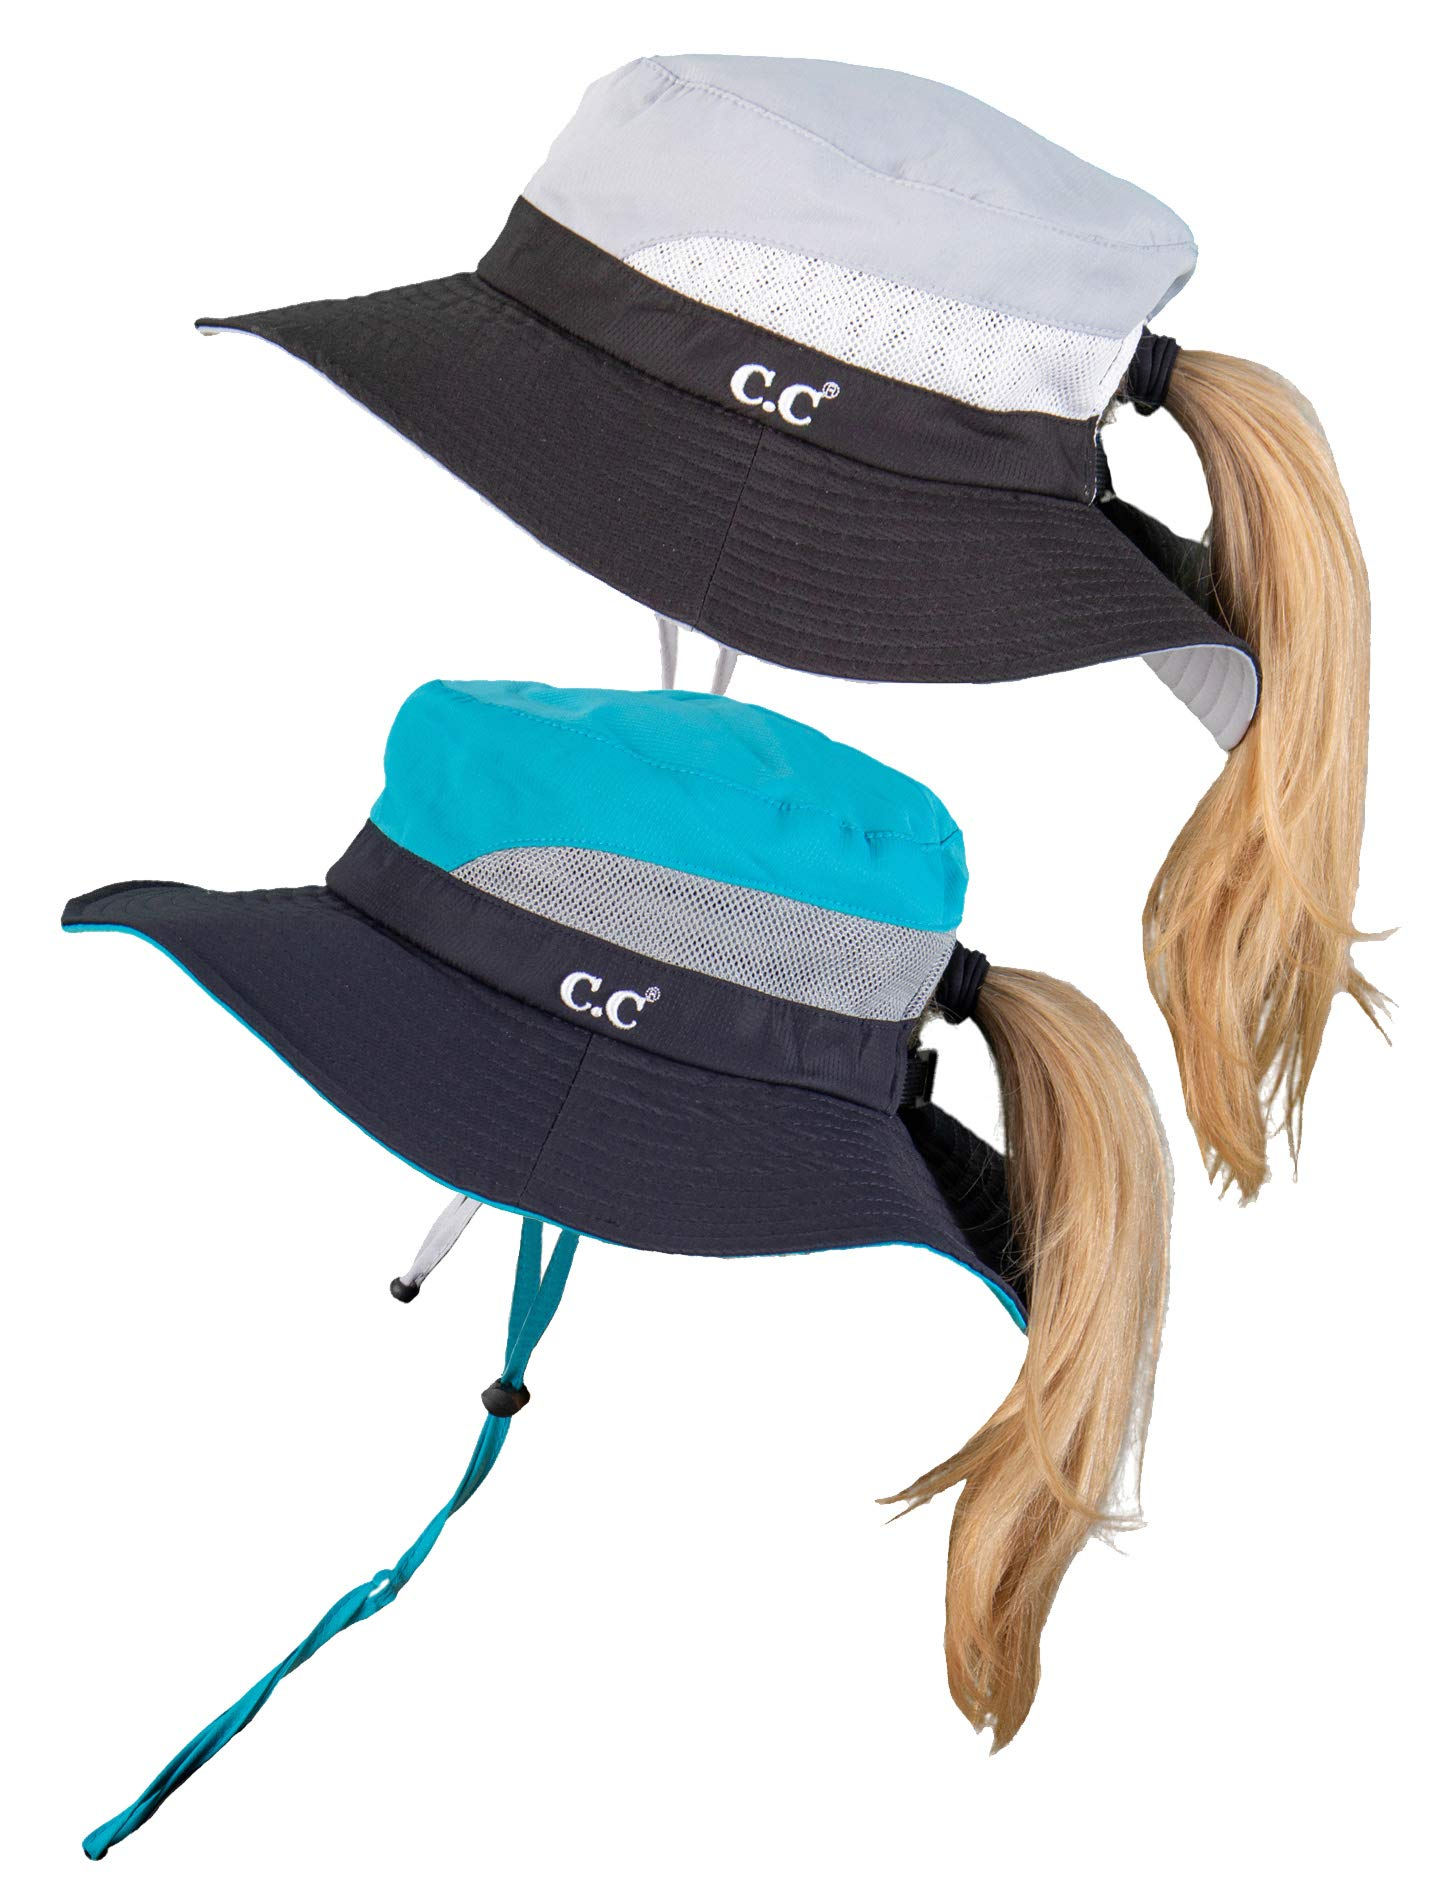 SH-2177-2-06213146 Ponytail Sun Hat w/String - 2 PK: Black/Grey & Navy/Turquoise